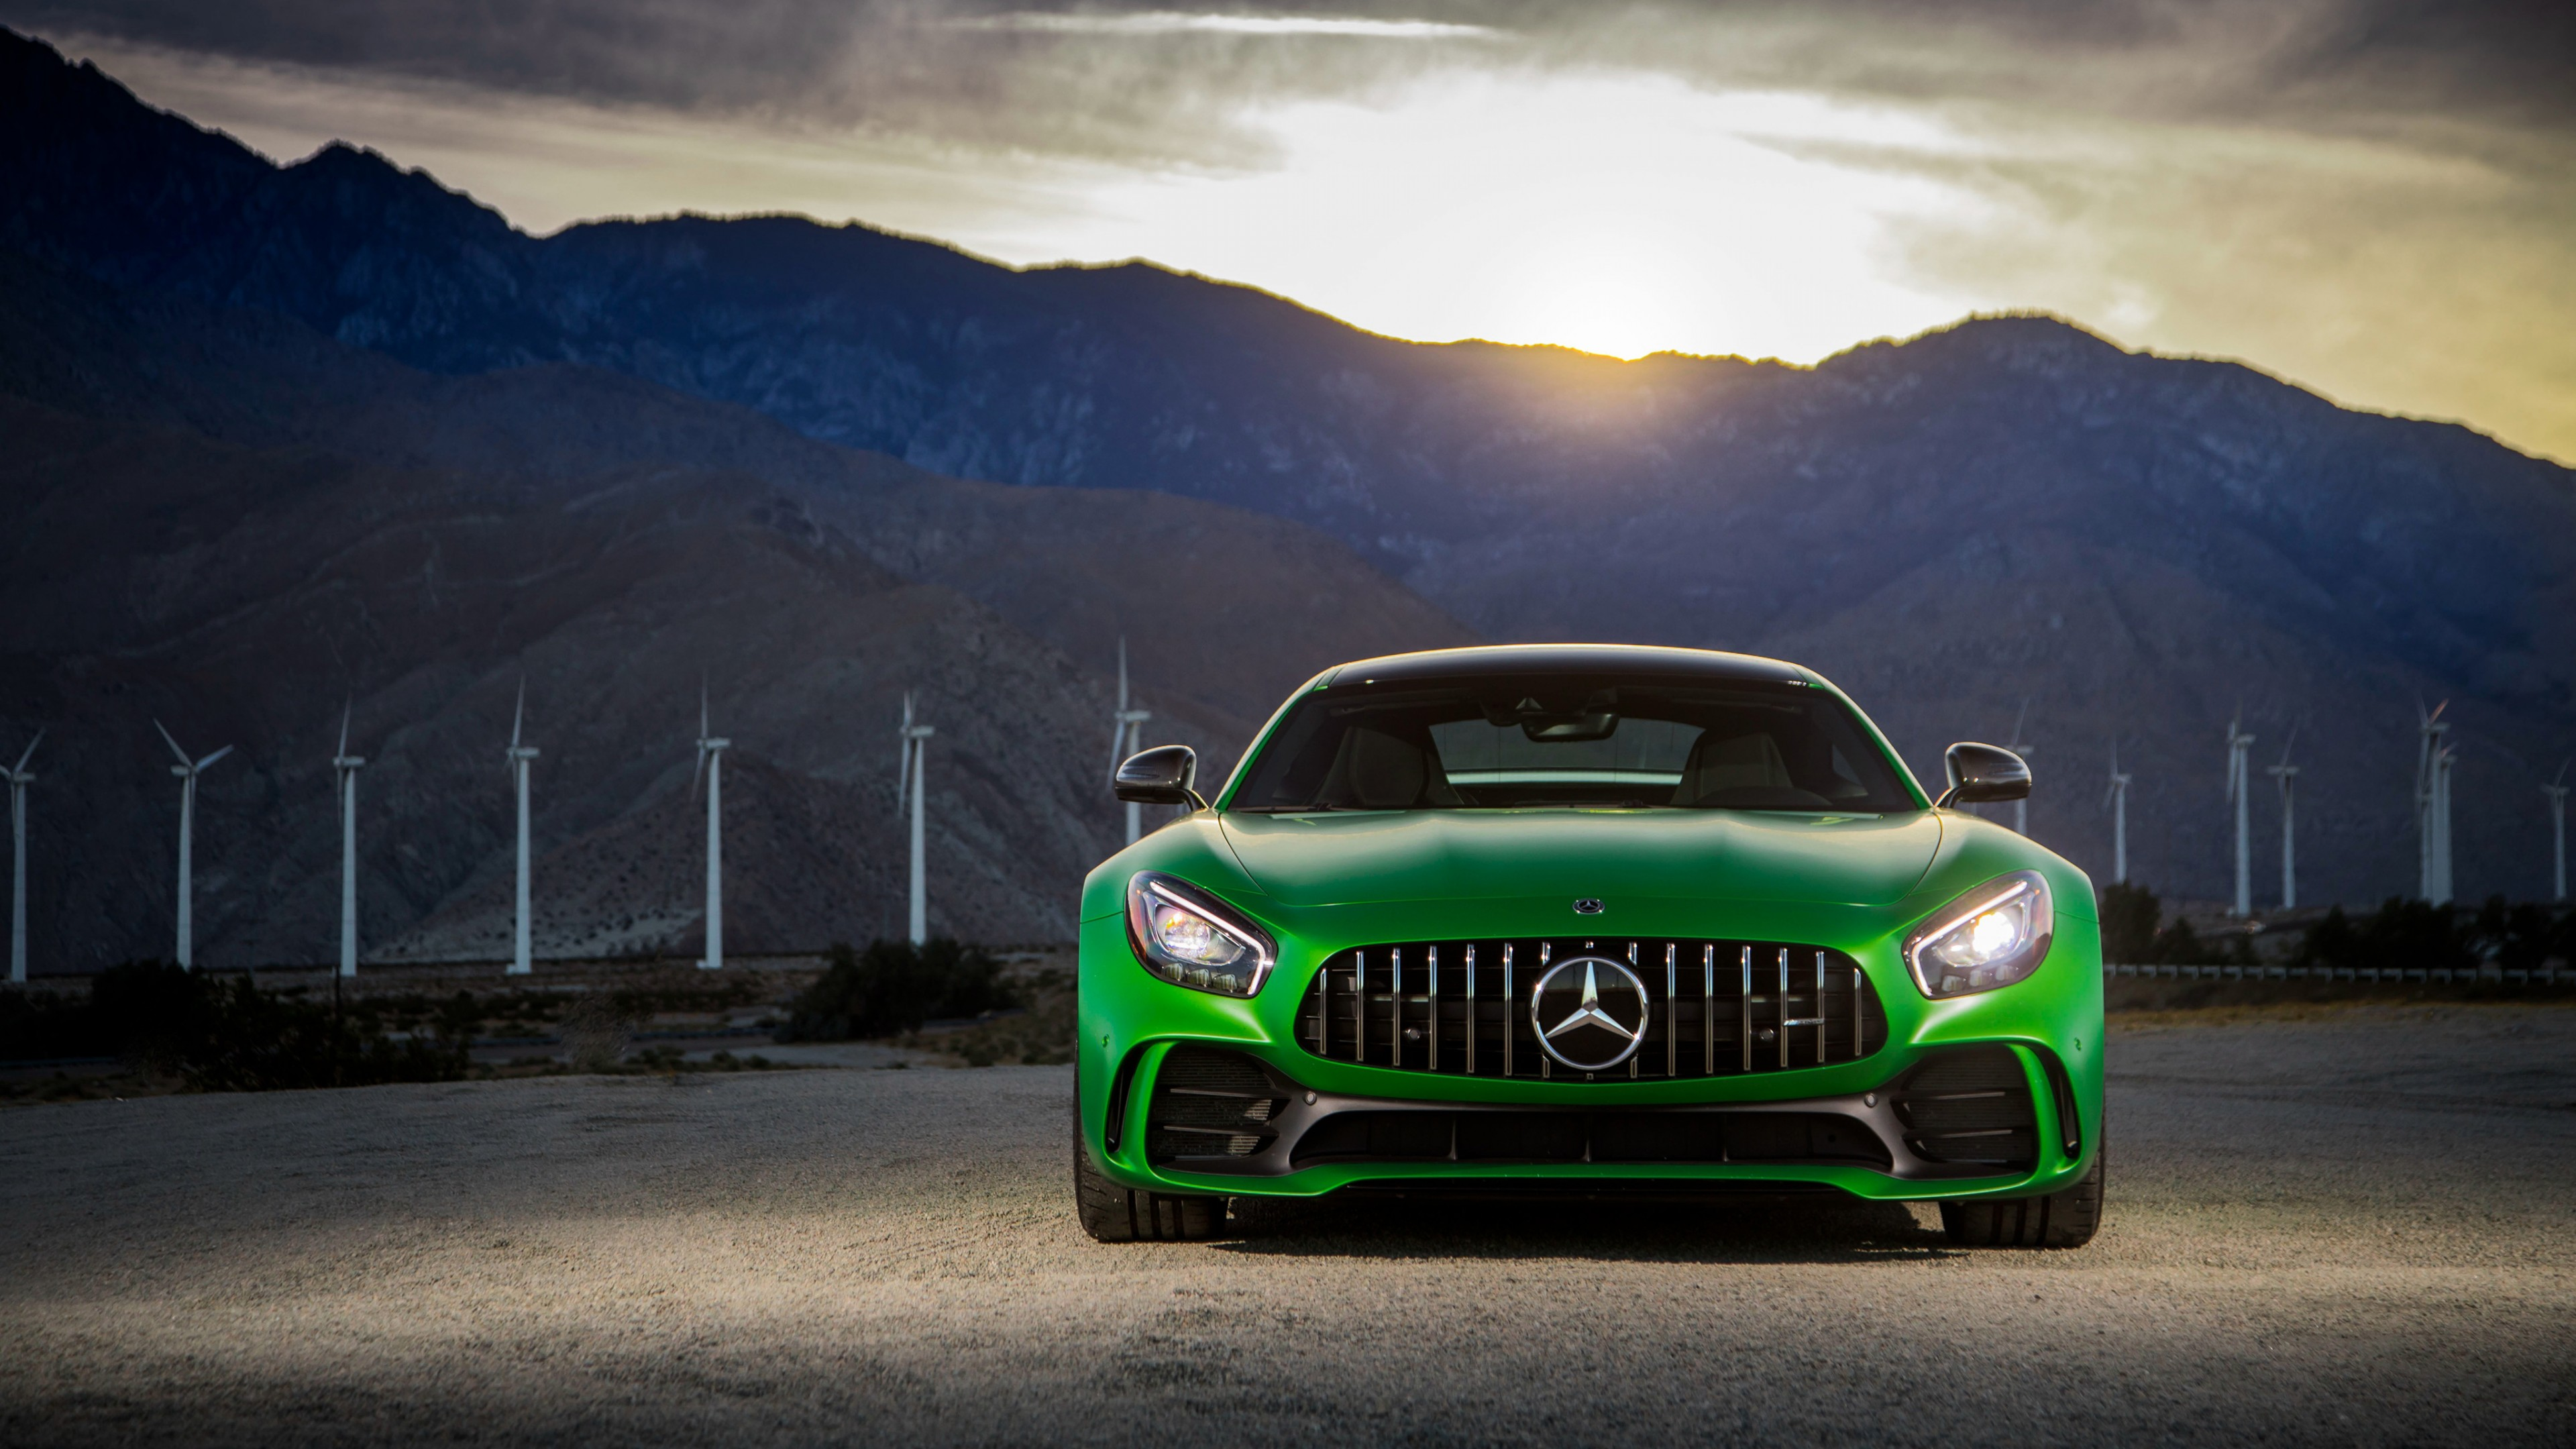 Life Quotes Wallpapers For Facebook Wallpaper Mercedes Amg Gtr 2018 Cars 4k Cars Amp Bikes 17088